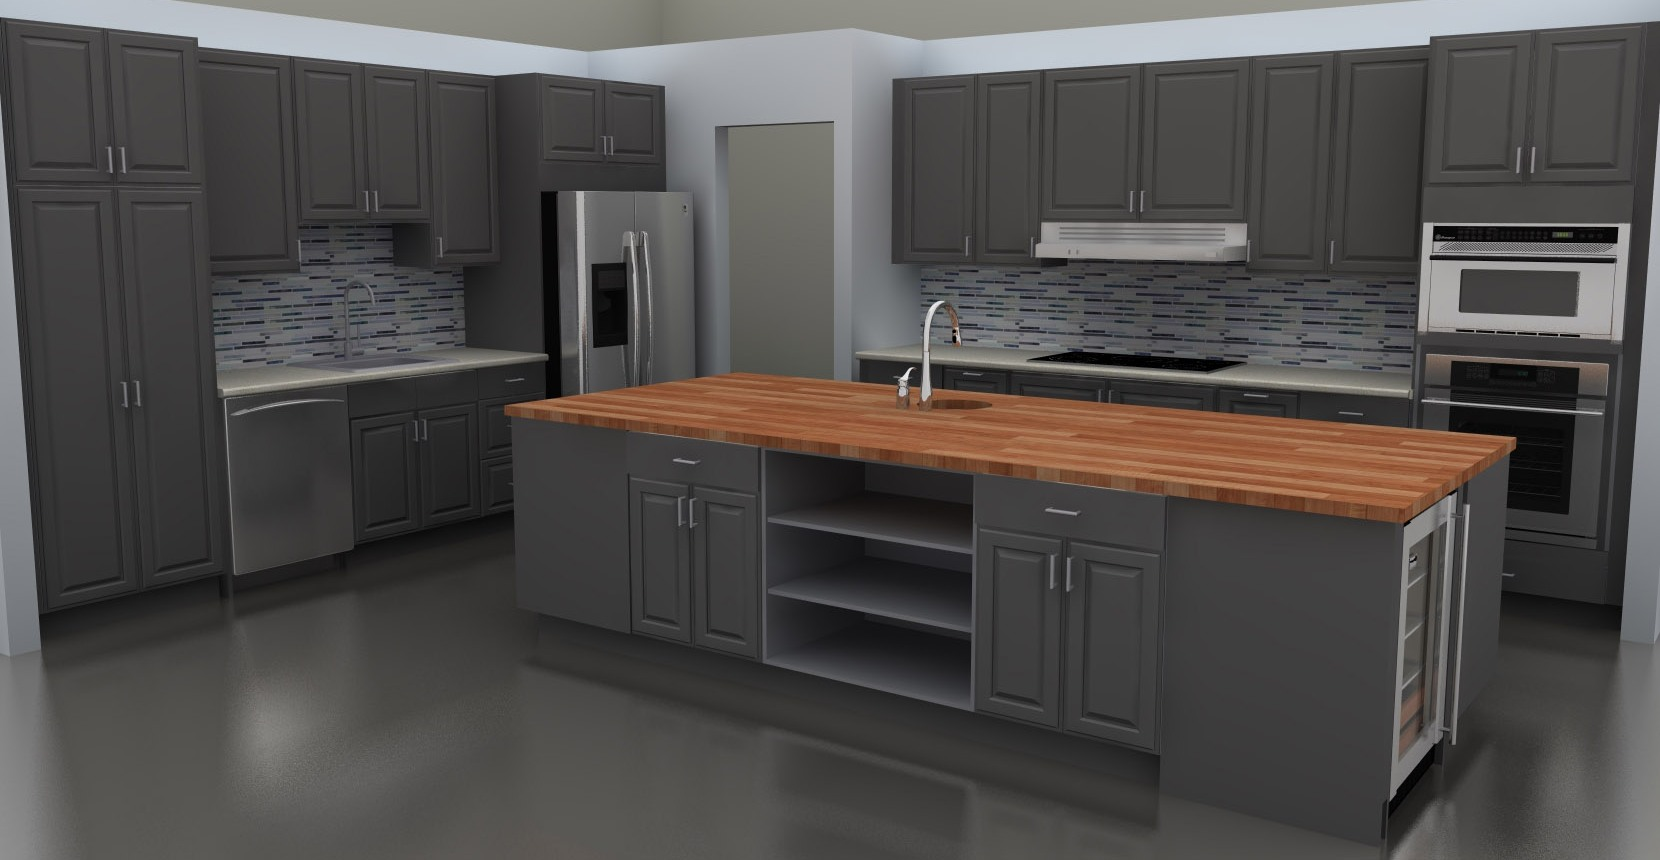 Kitchen Design Cabinets Examples Ikea Butcher Block Counter On Island